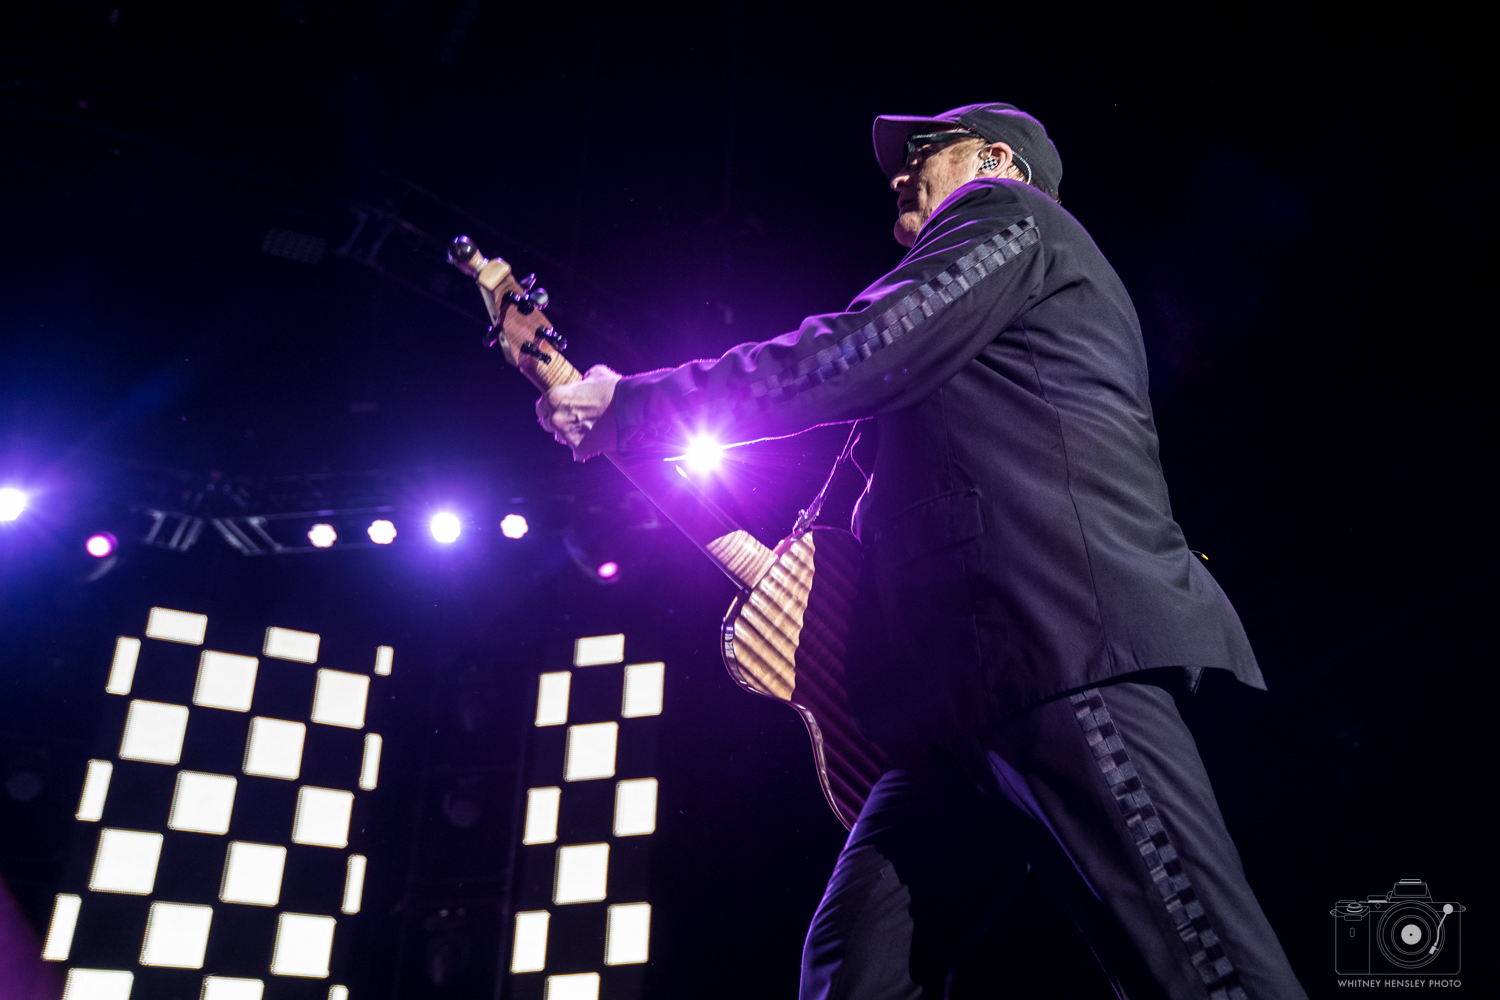 Choctaw casino concert cheap trick nsw casino liquor and gaming control authority